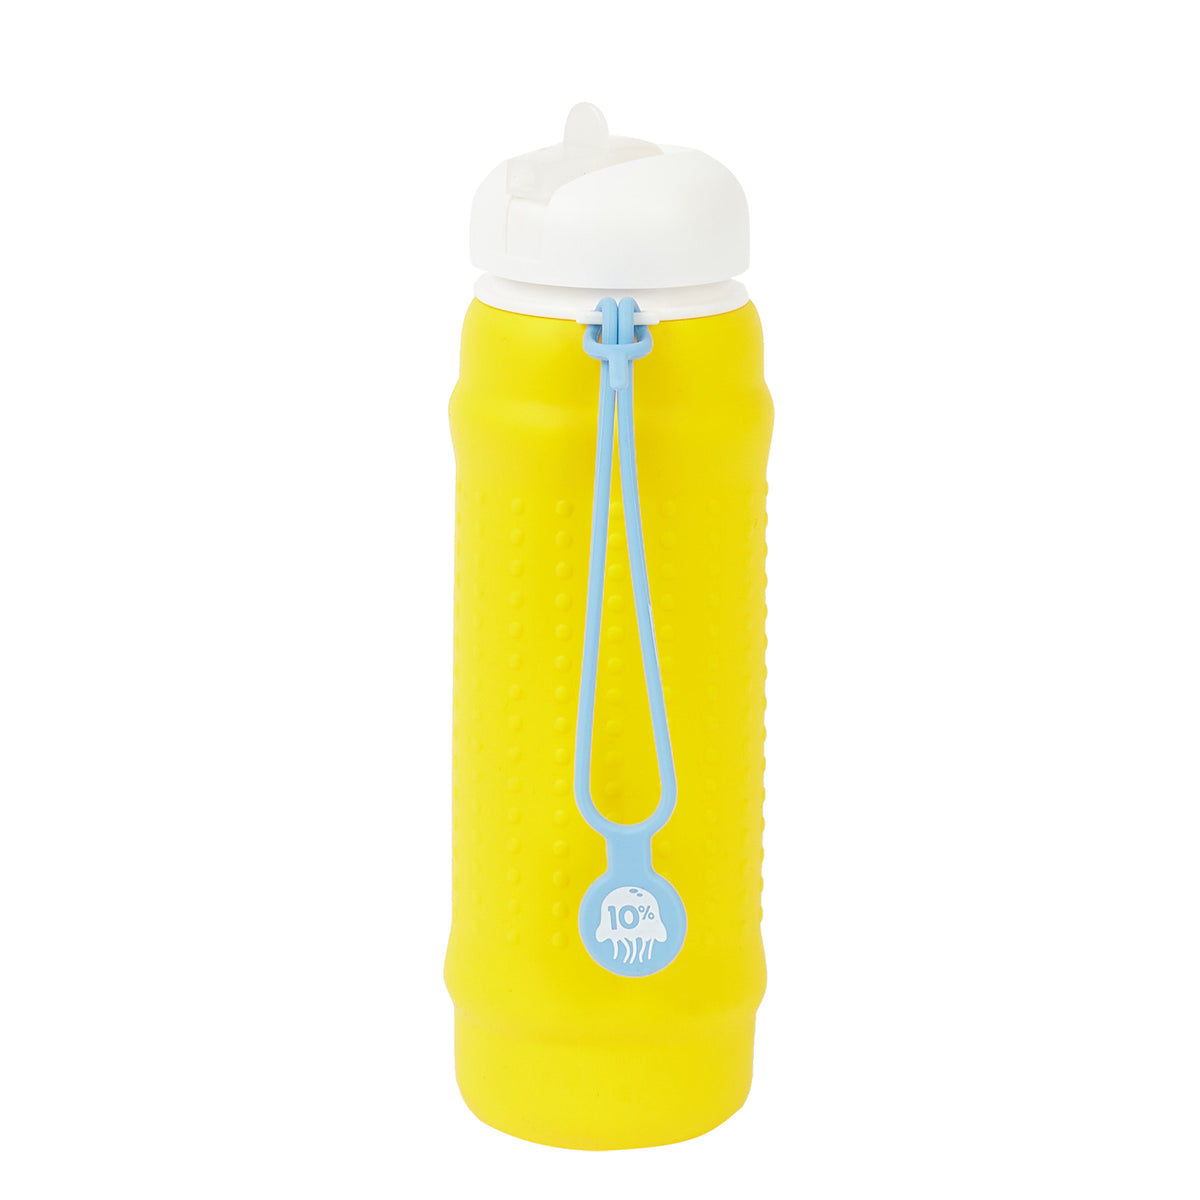 Rolla Bottle - Yellow, White Lid + Dusty Blue Strap